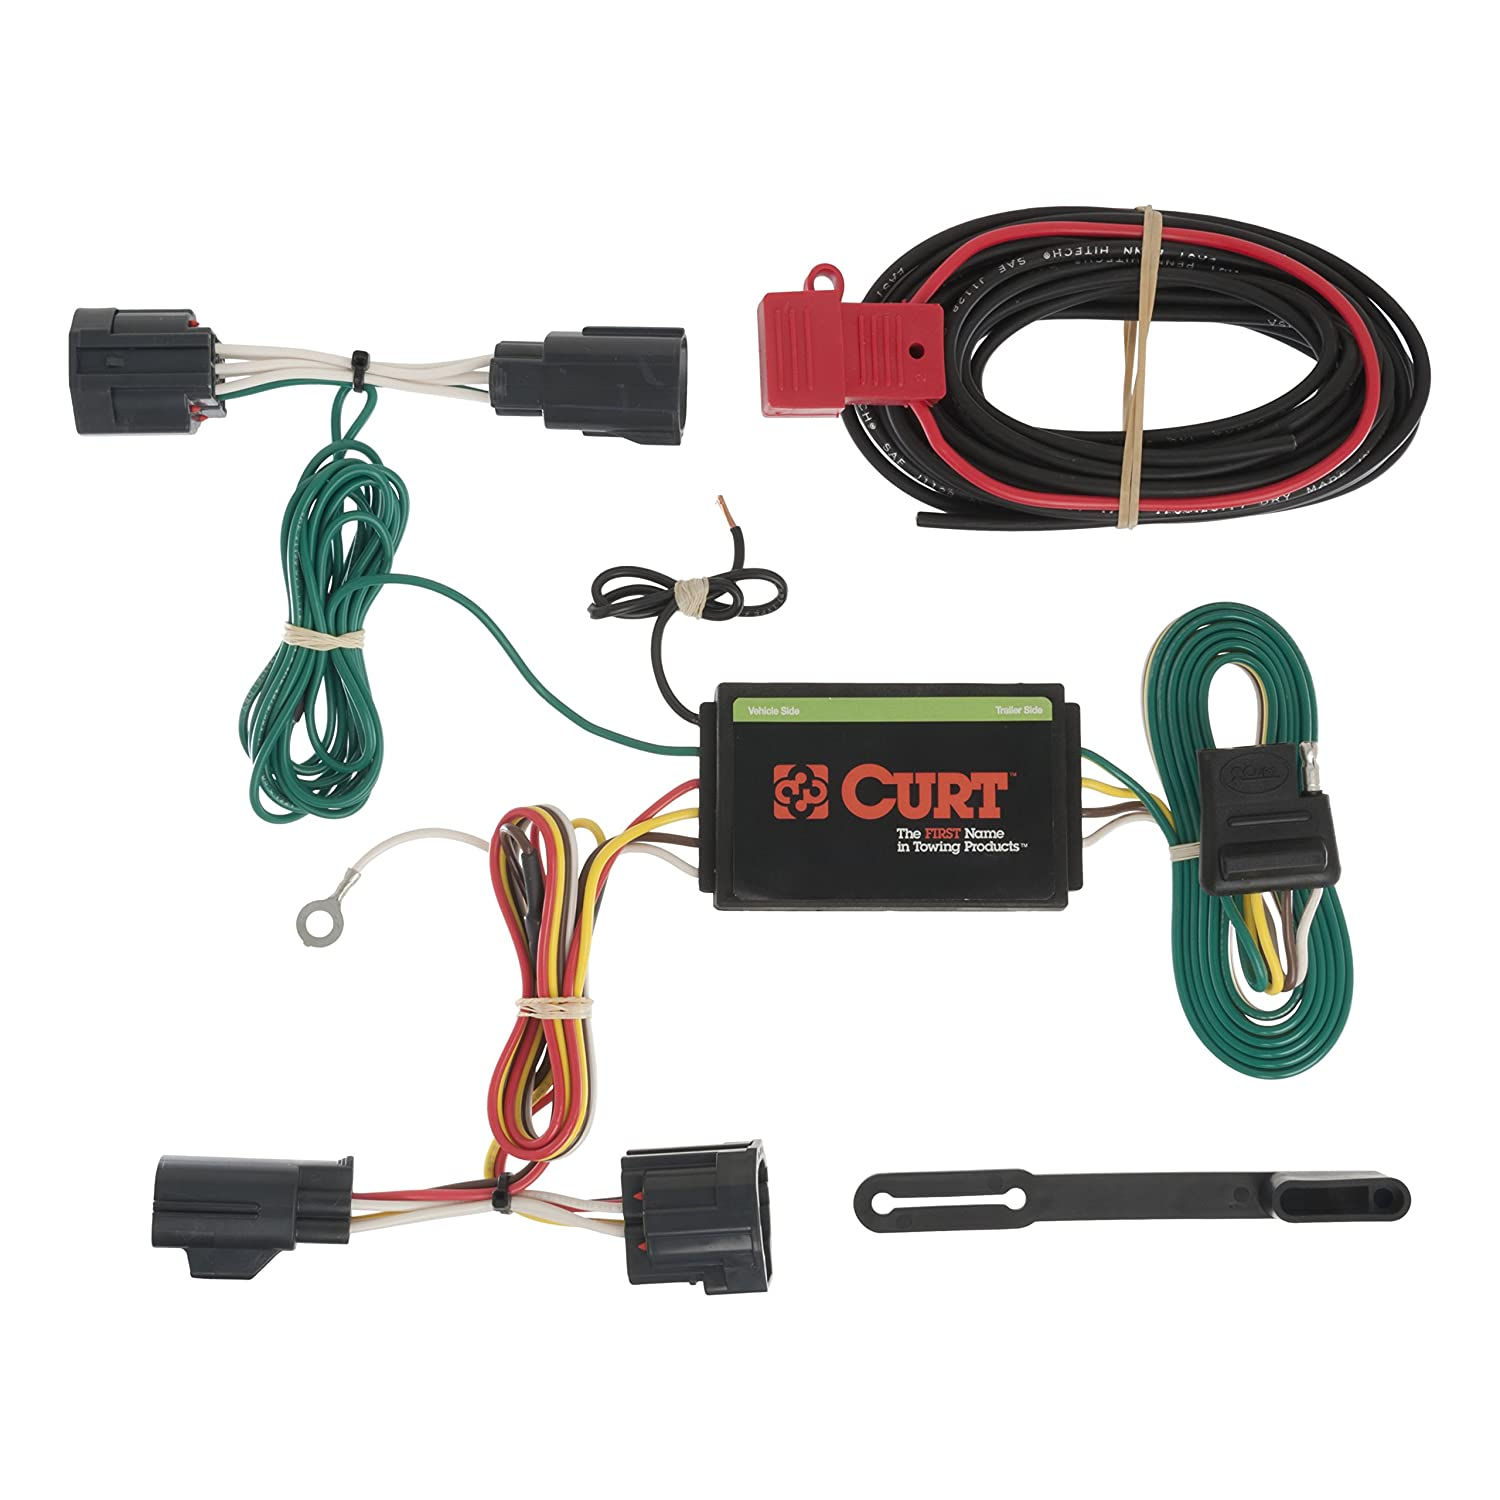 81LkYrKUmEL._SL1500_ amazon com curt 56183 custom wiring harness automotive automotive wiring harness at mifinder.co